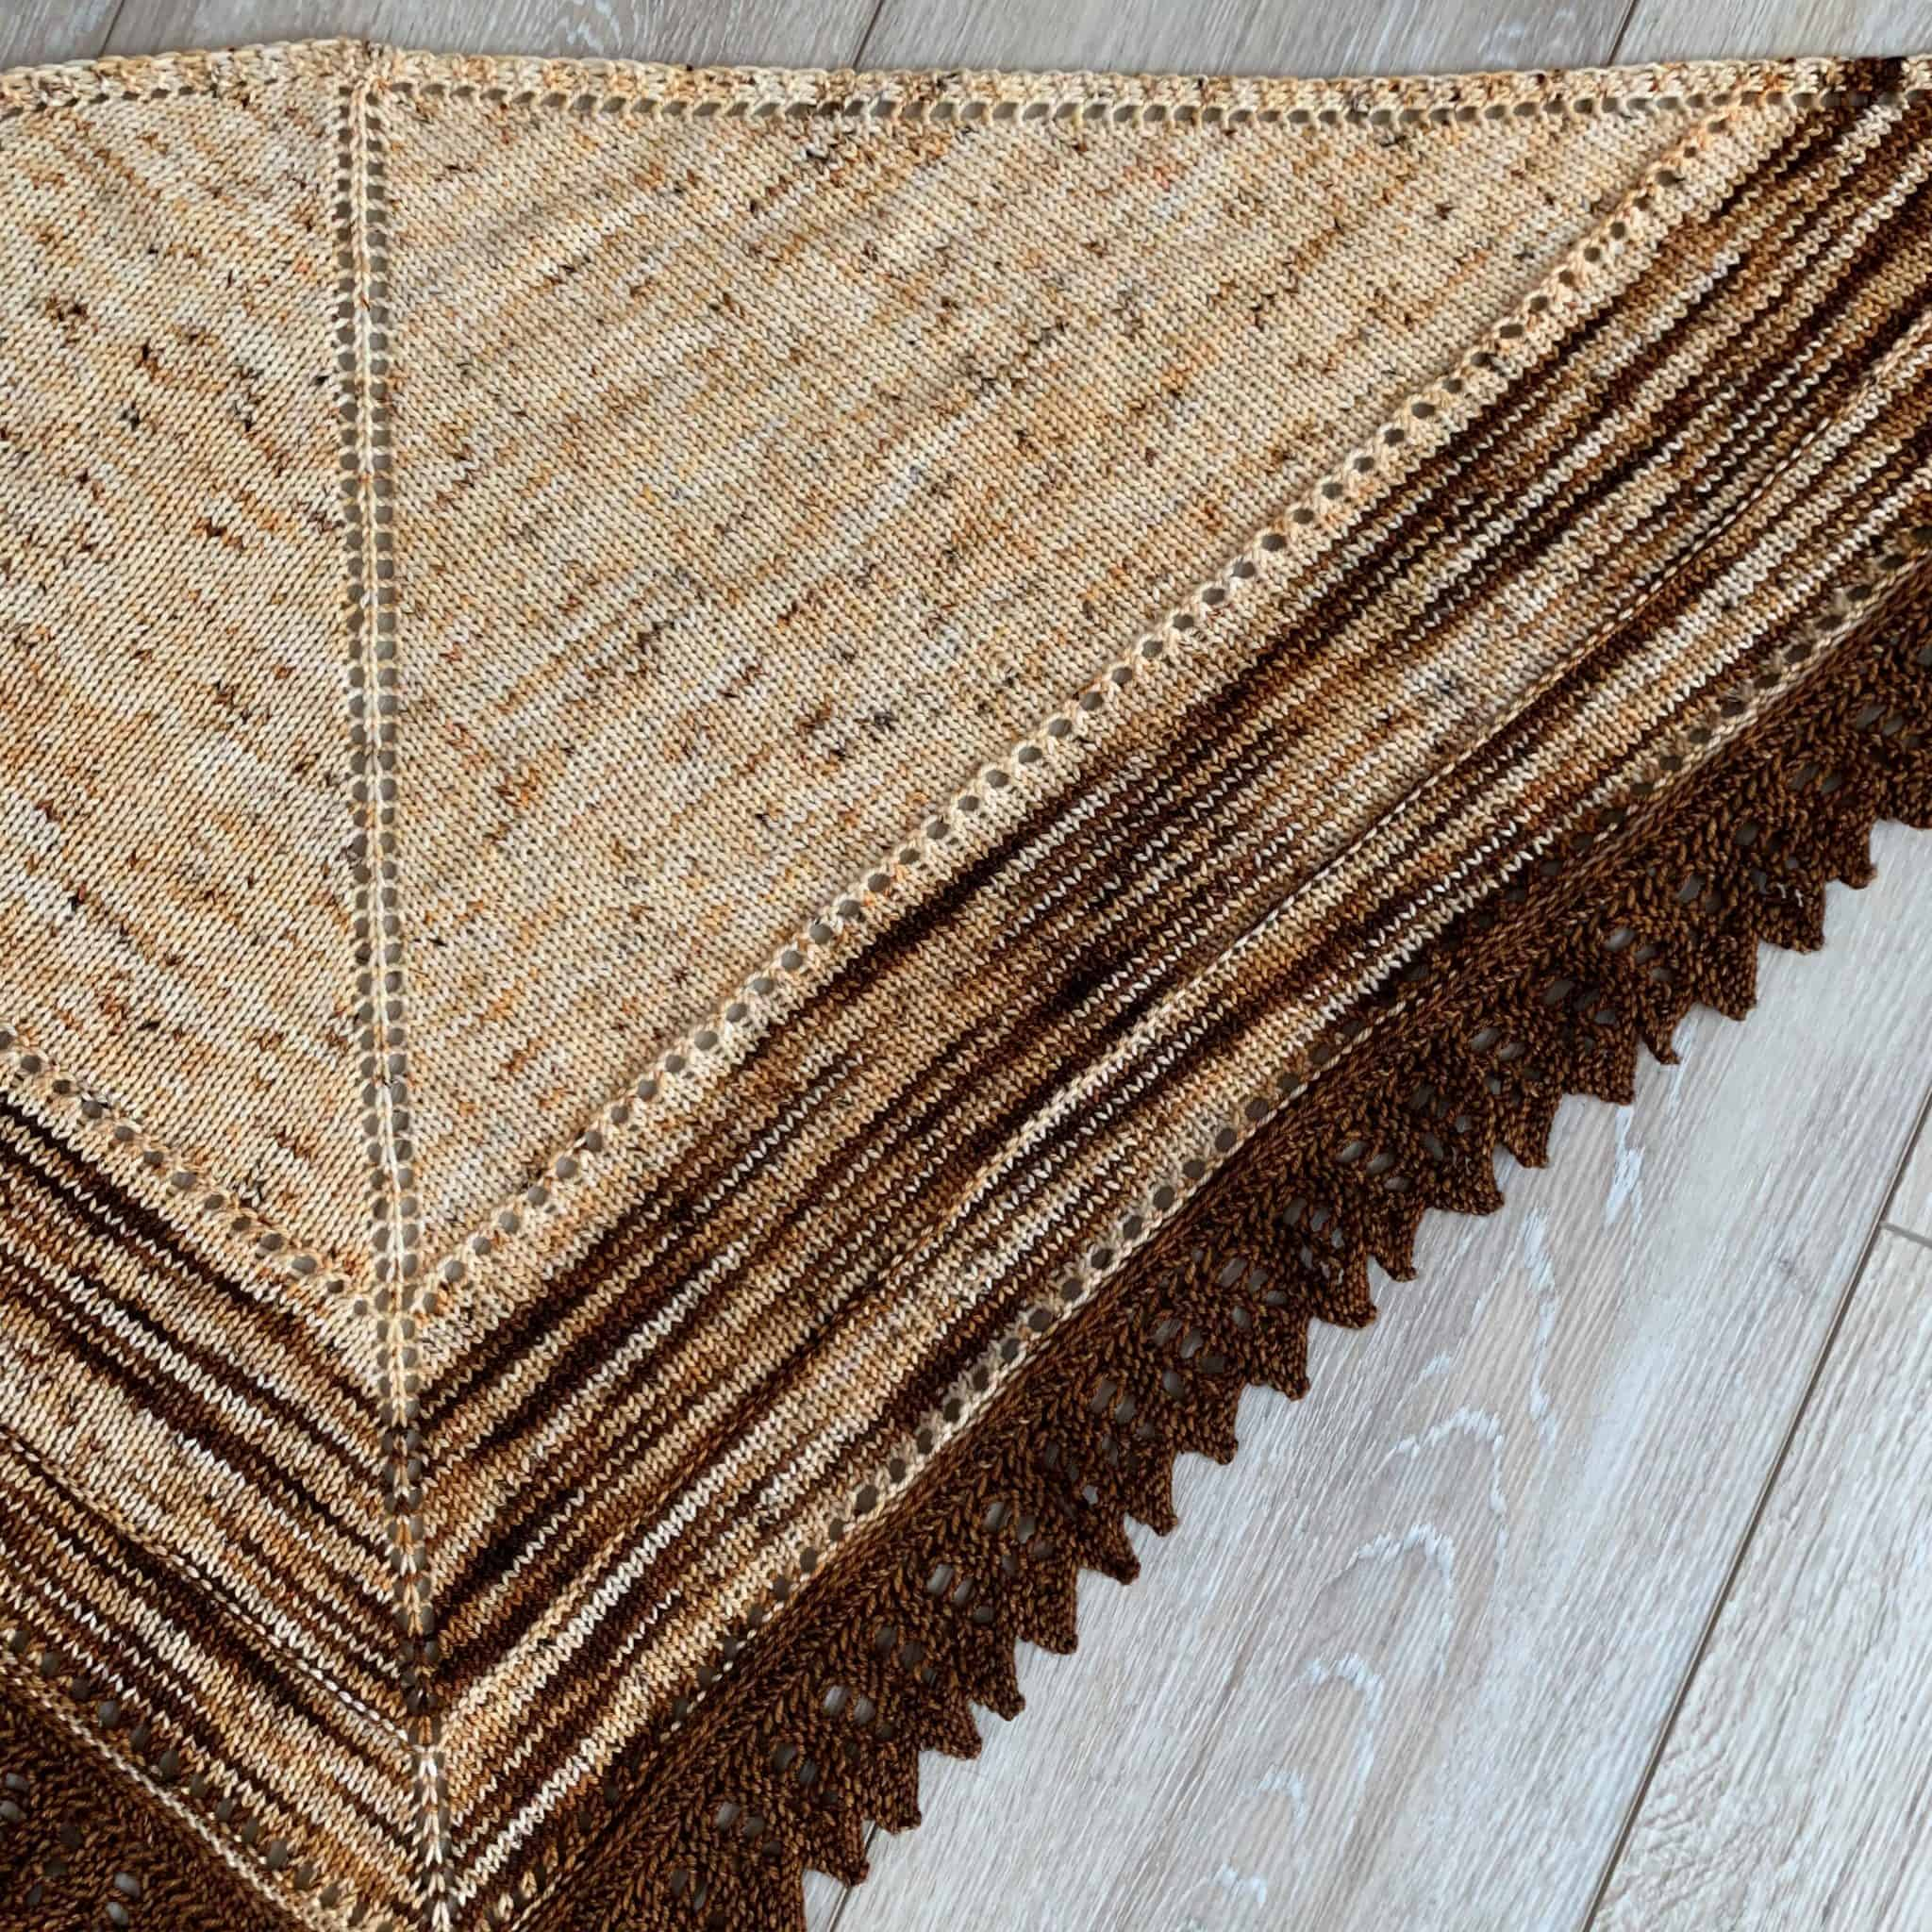 A cream and brown shawl.